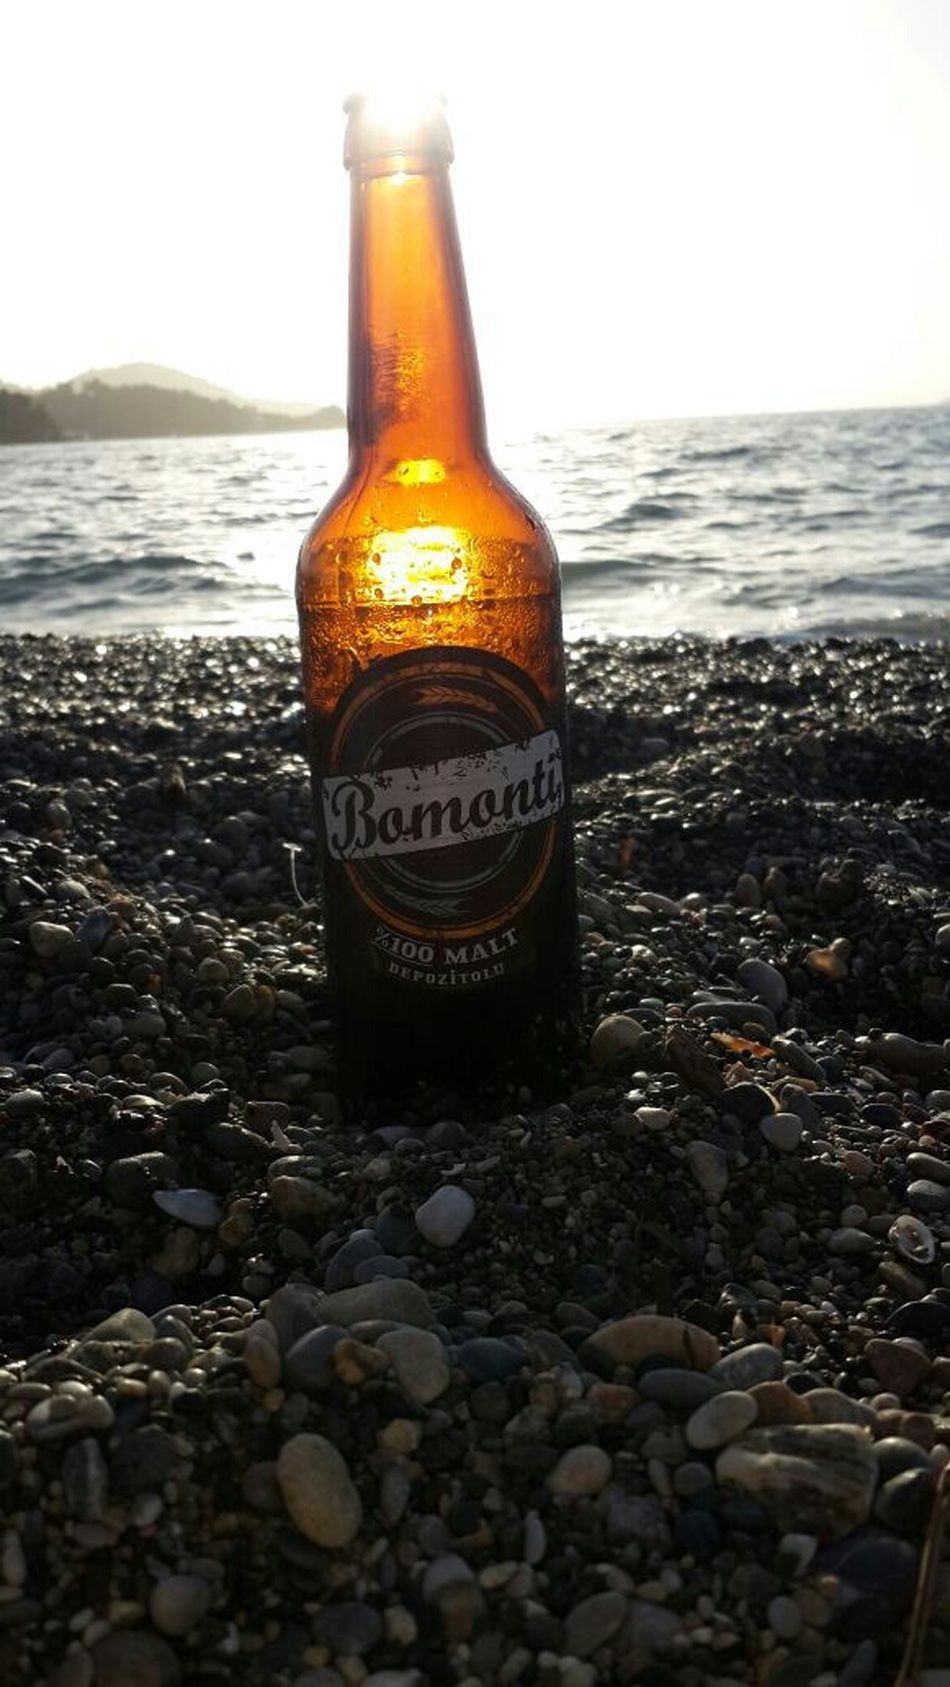 Bomonti Calisbeach Winter Holiday Enjoying Life Sunset #sun #clouds #skylovers #sky #nature #beautifulinnature #naturalbeauty Photography Landscape [a:20] i should ask for some money from Bomonti Beer :) Tadaa Community